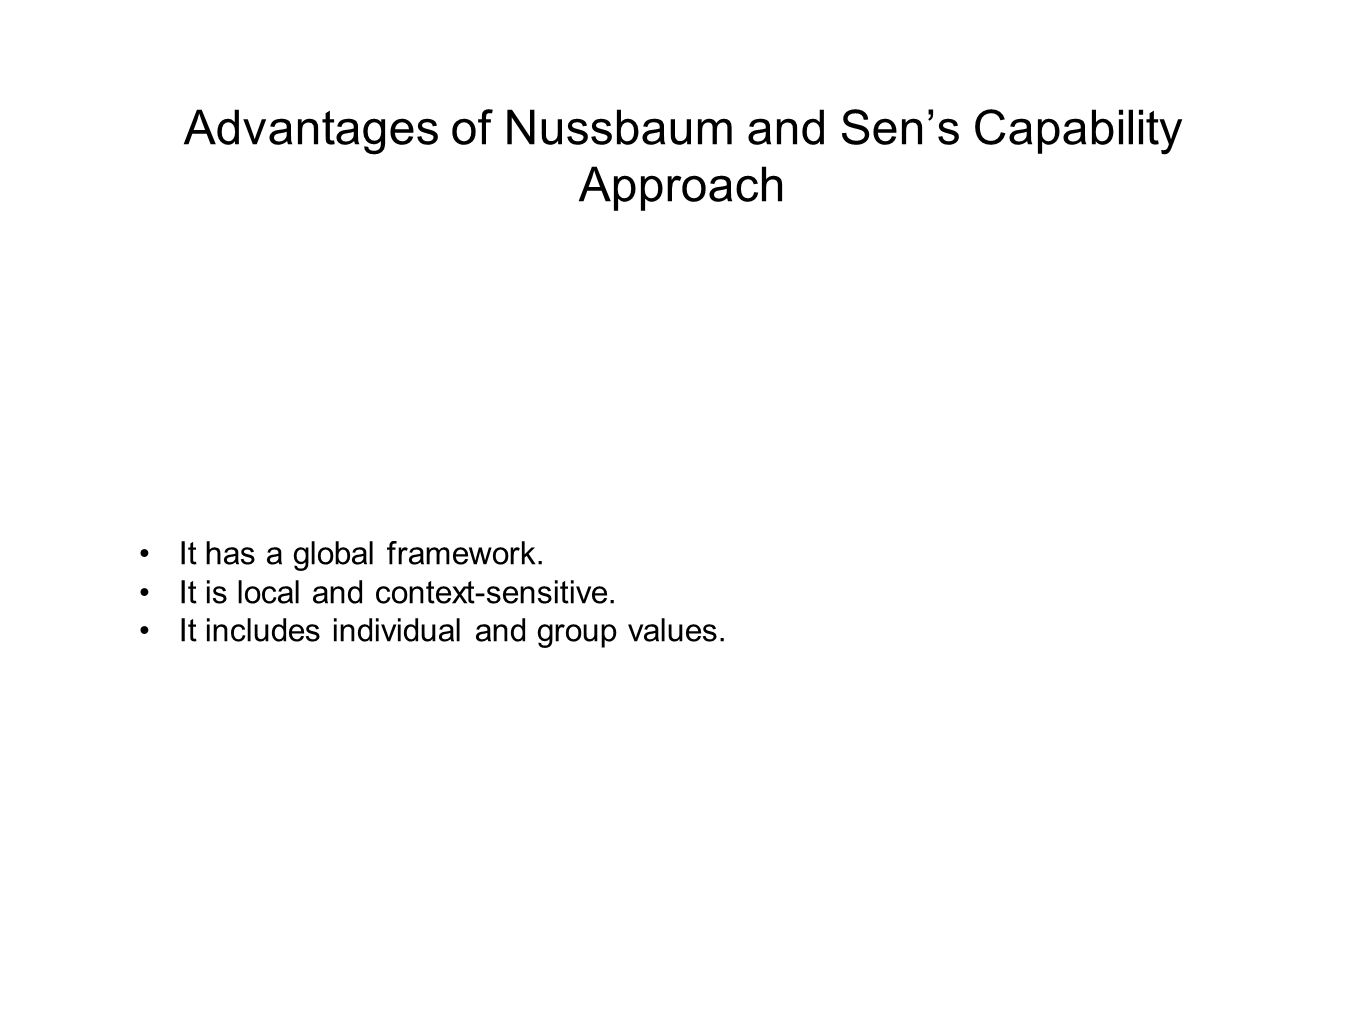 Advantages of Nussbaum and Sen's Capability Approach It has a global framework.